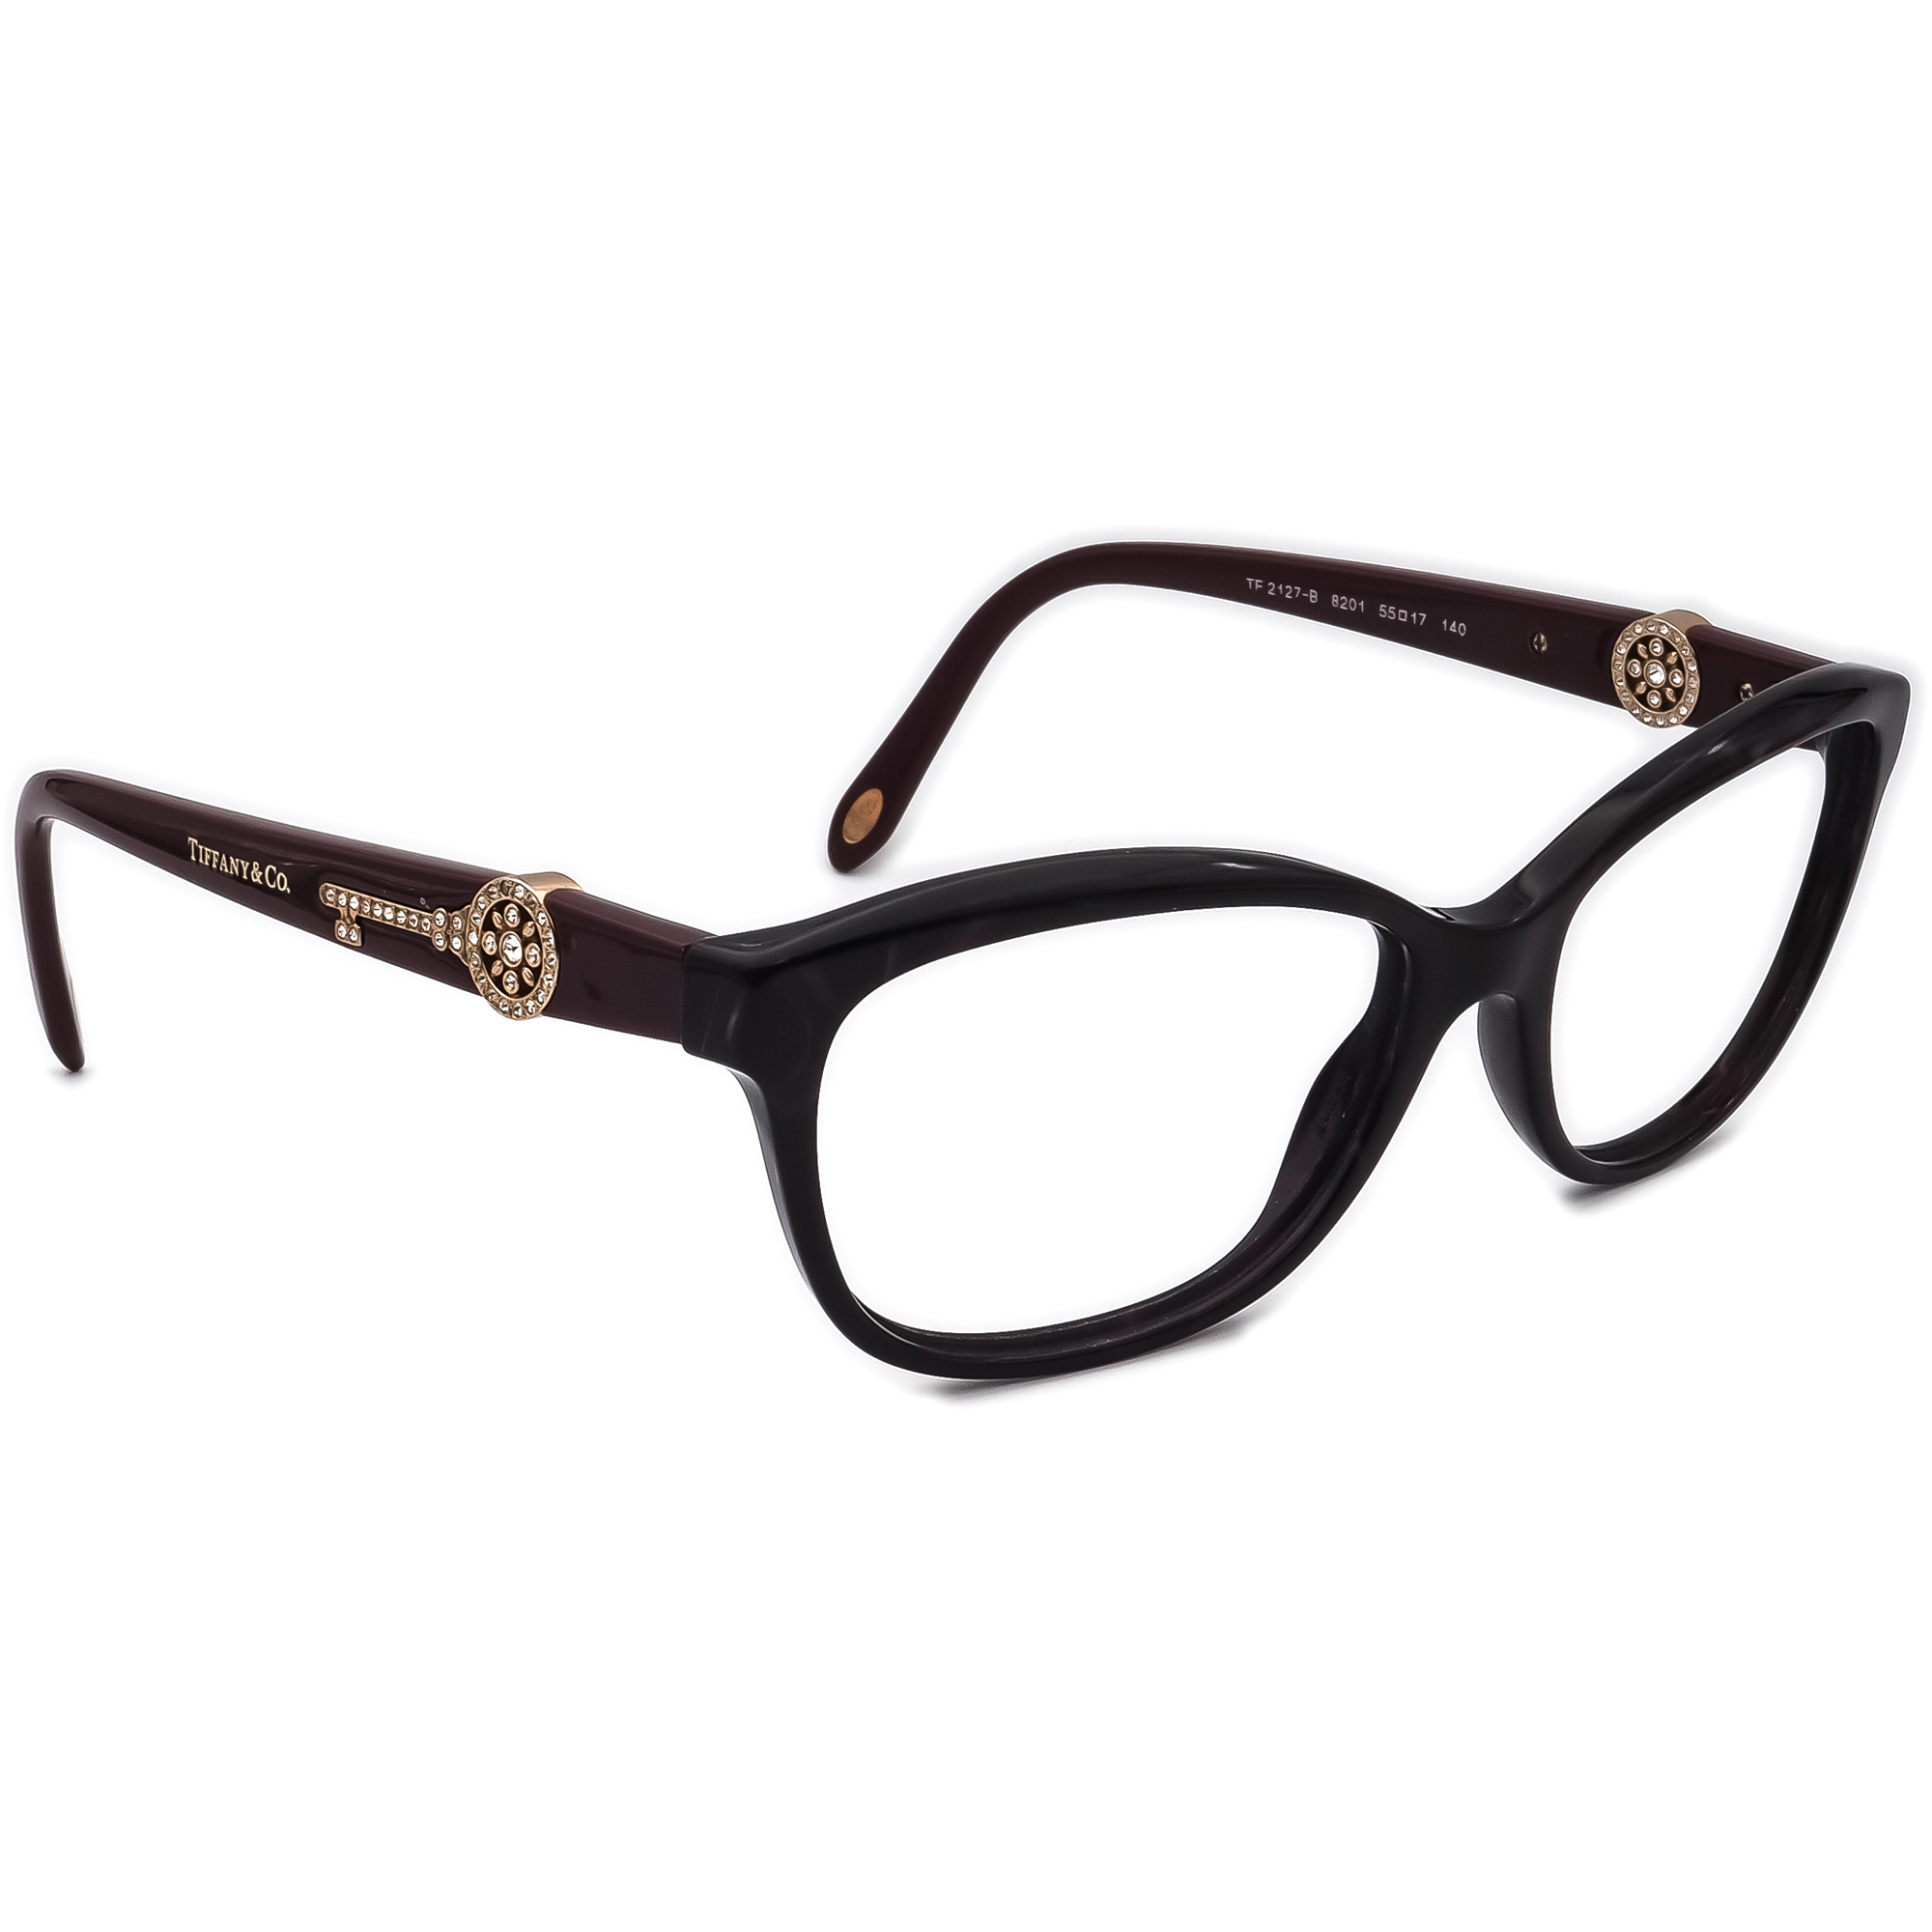 Tiffany & Co. TF 2127-B 8201 Eyeglasses